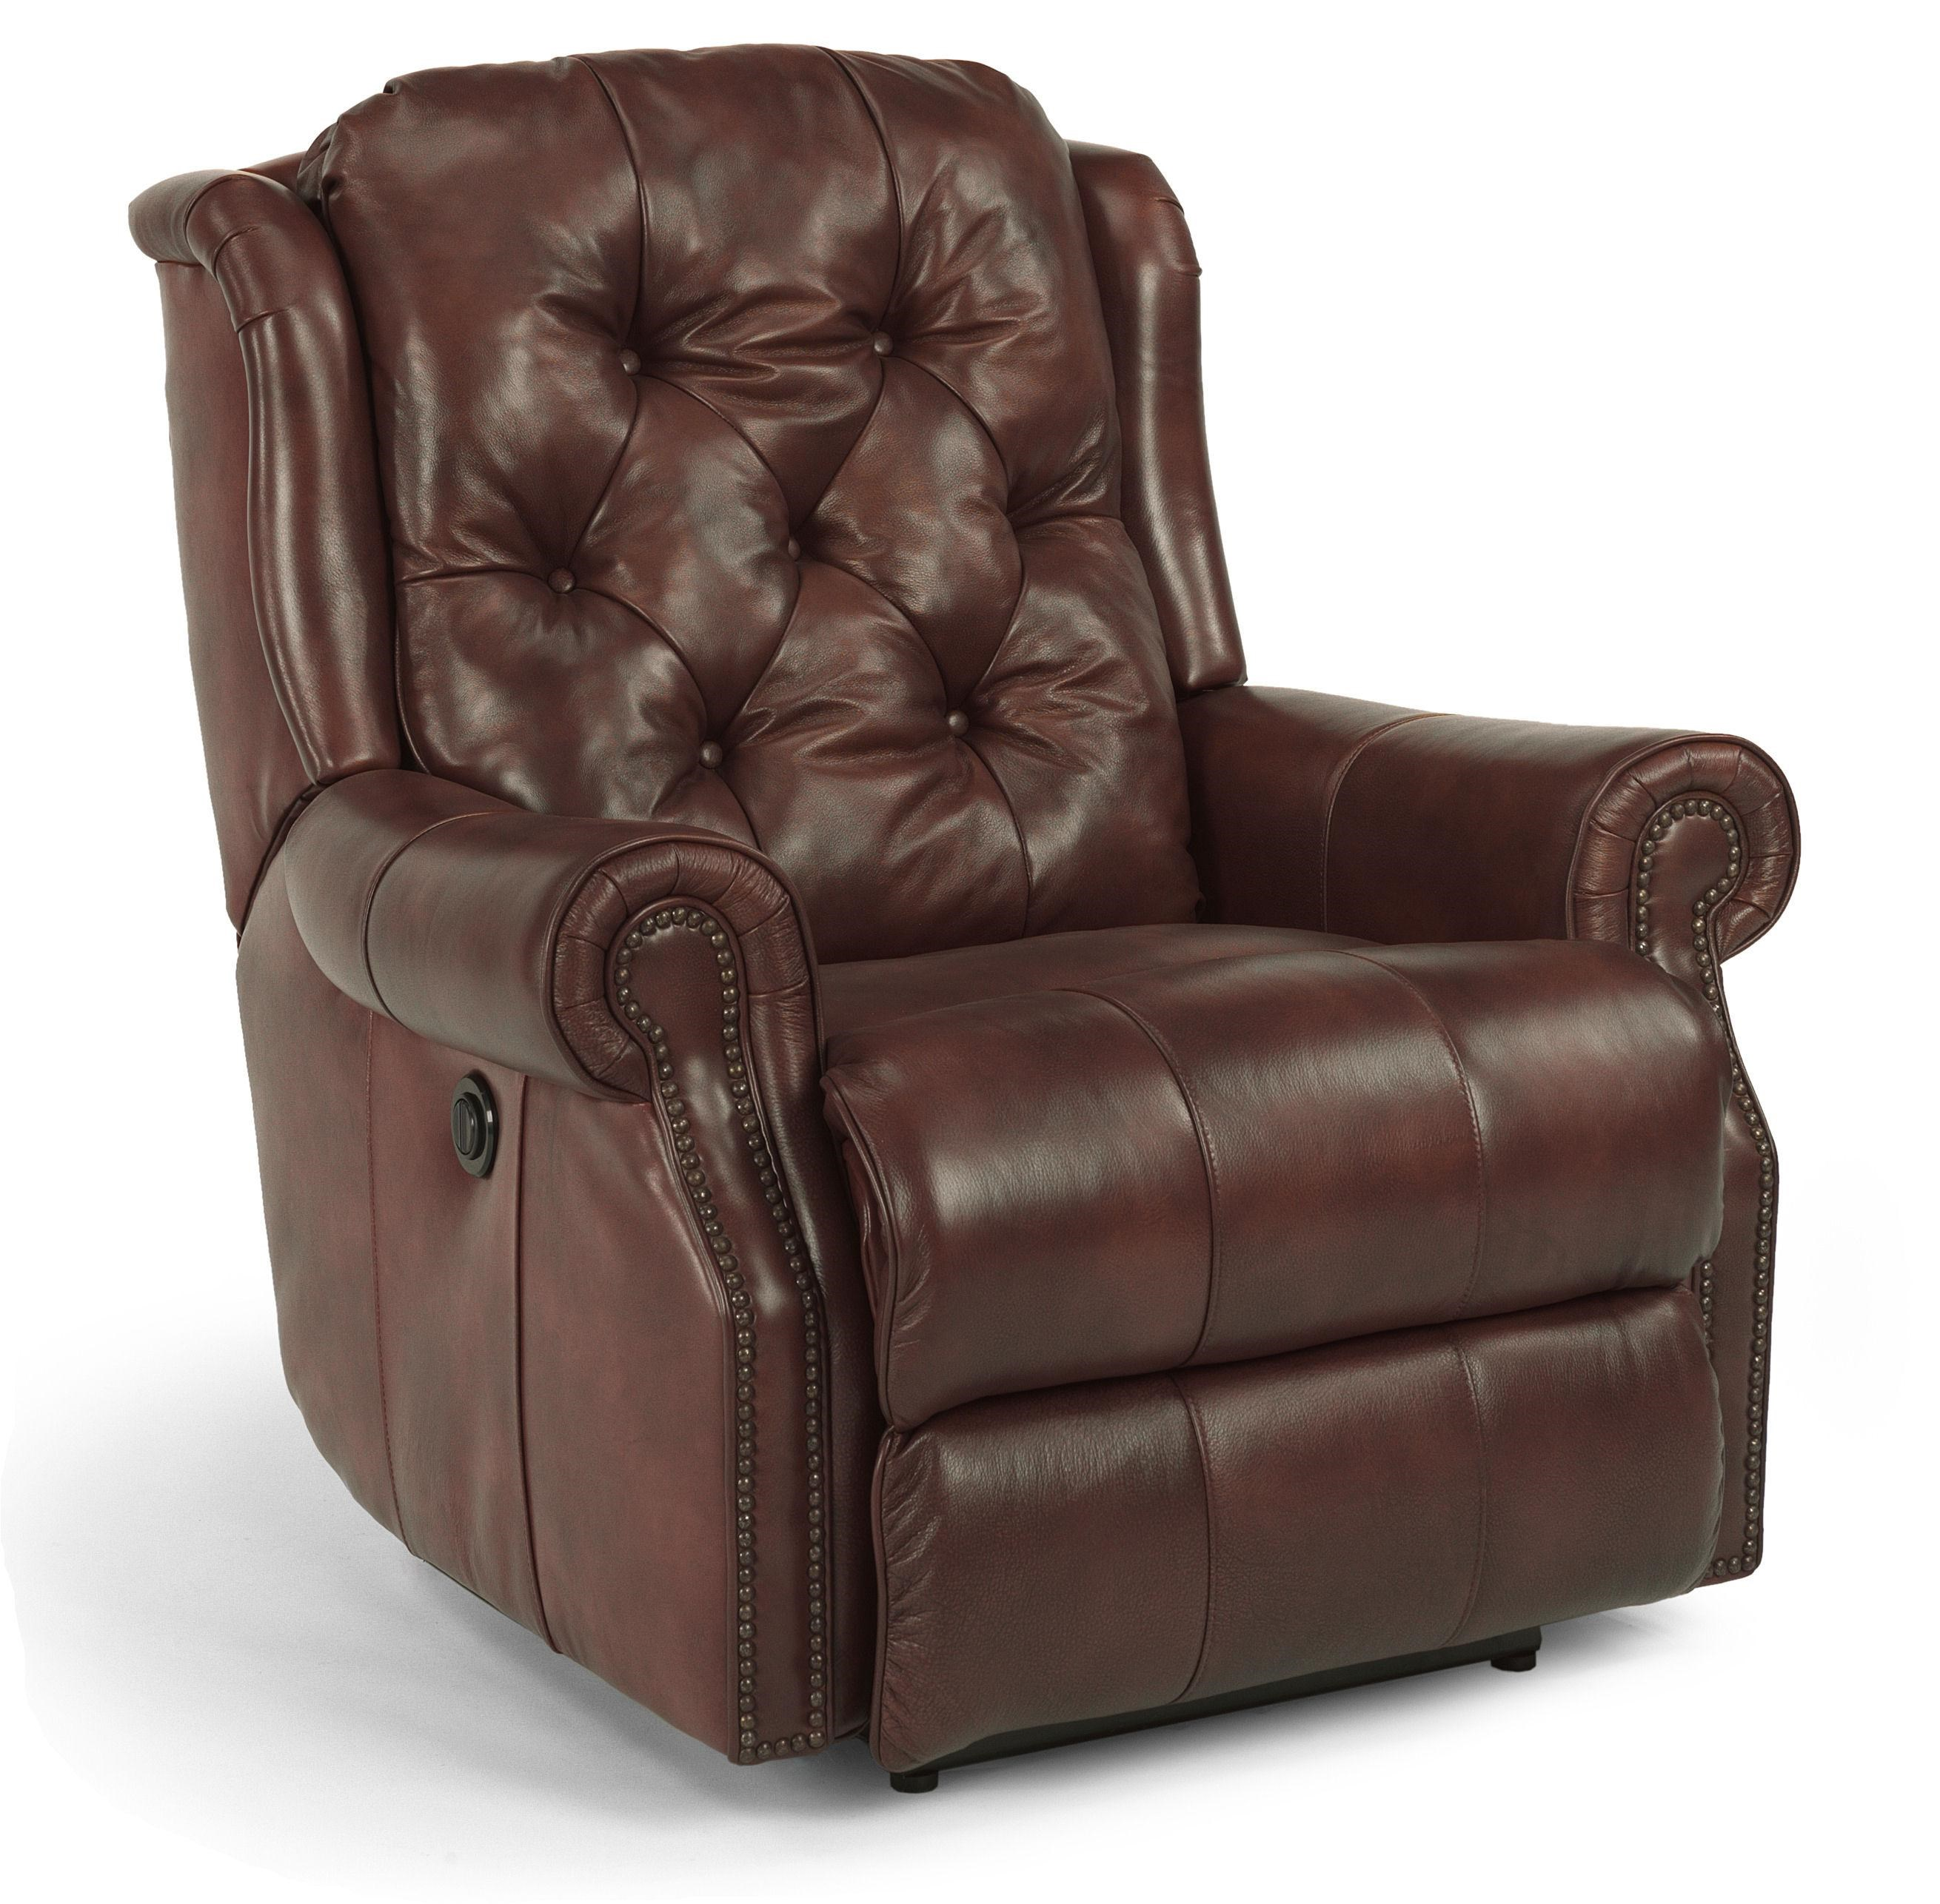 Flexsteel Latitudes-Fairfax Rocker Recliner with Tufted Back and Nailhead Trim - Furniture and ...